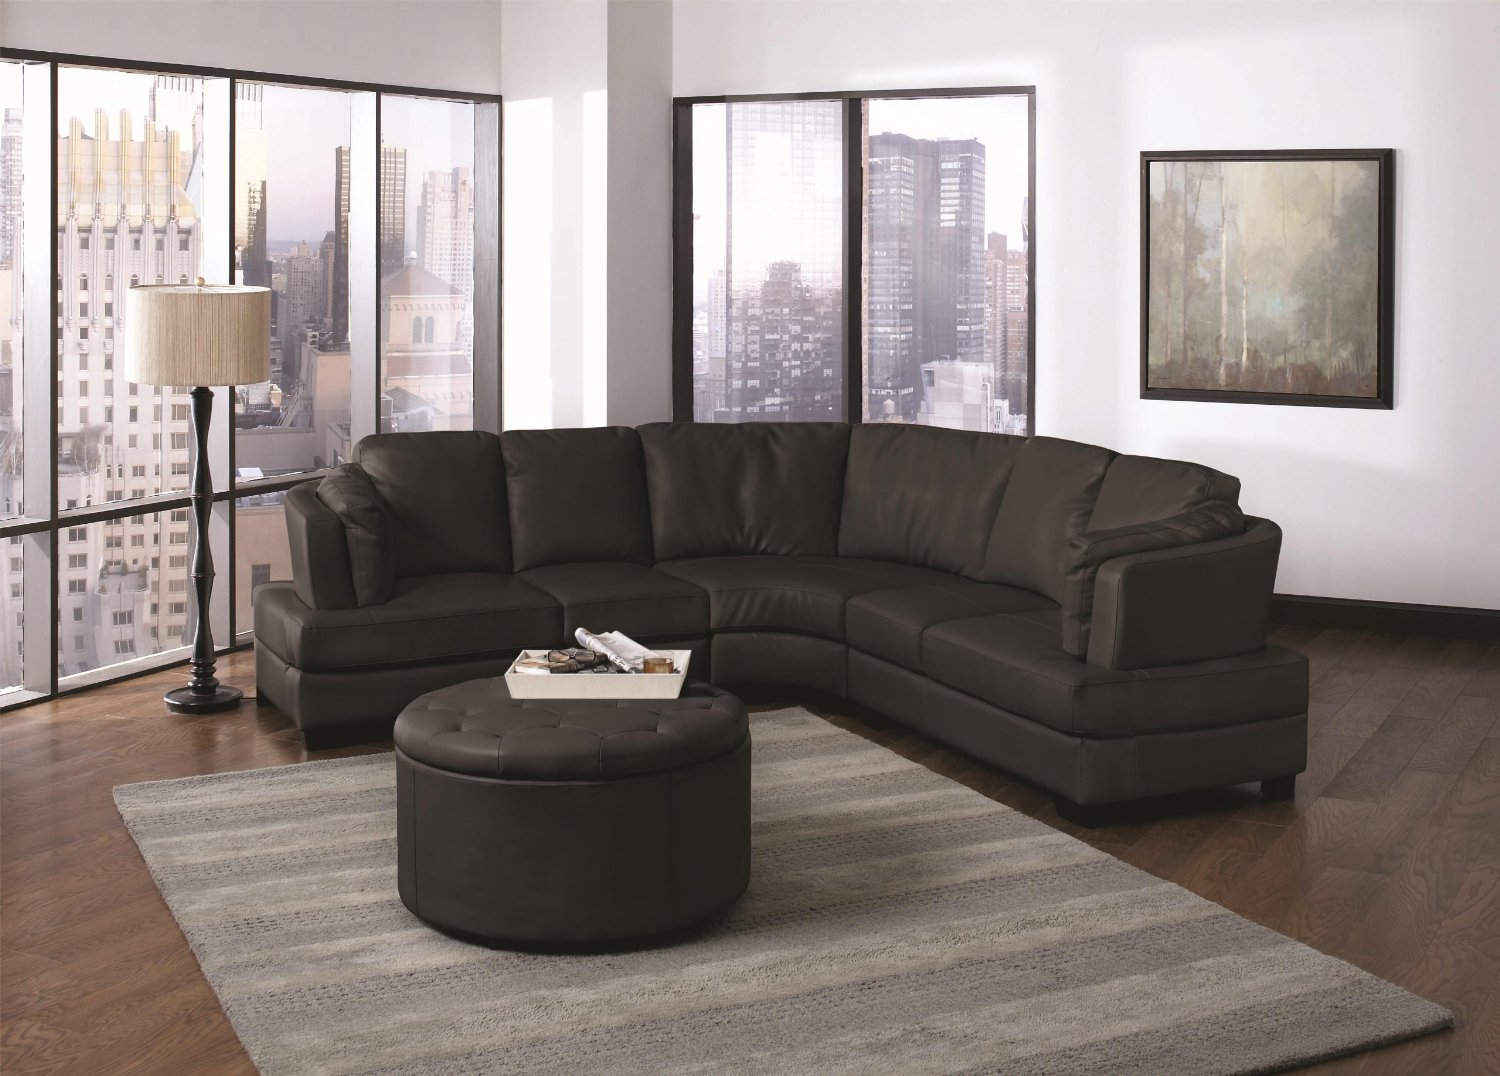 curved modular and sectional sofa